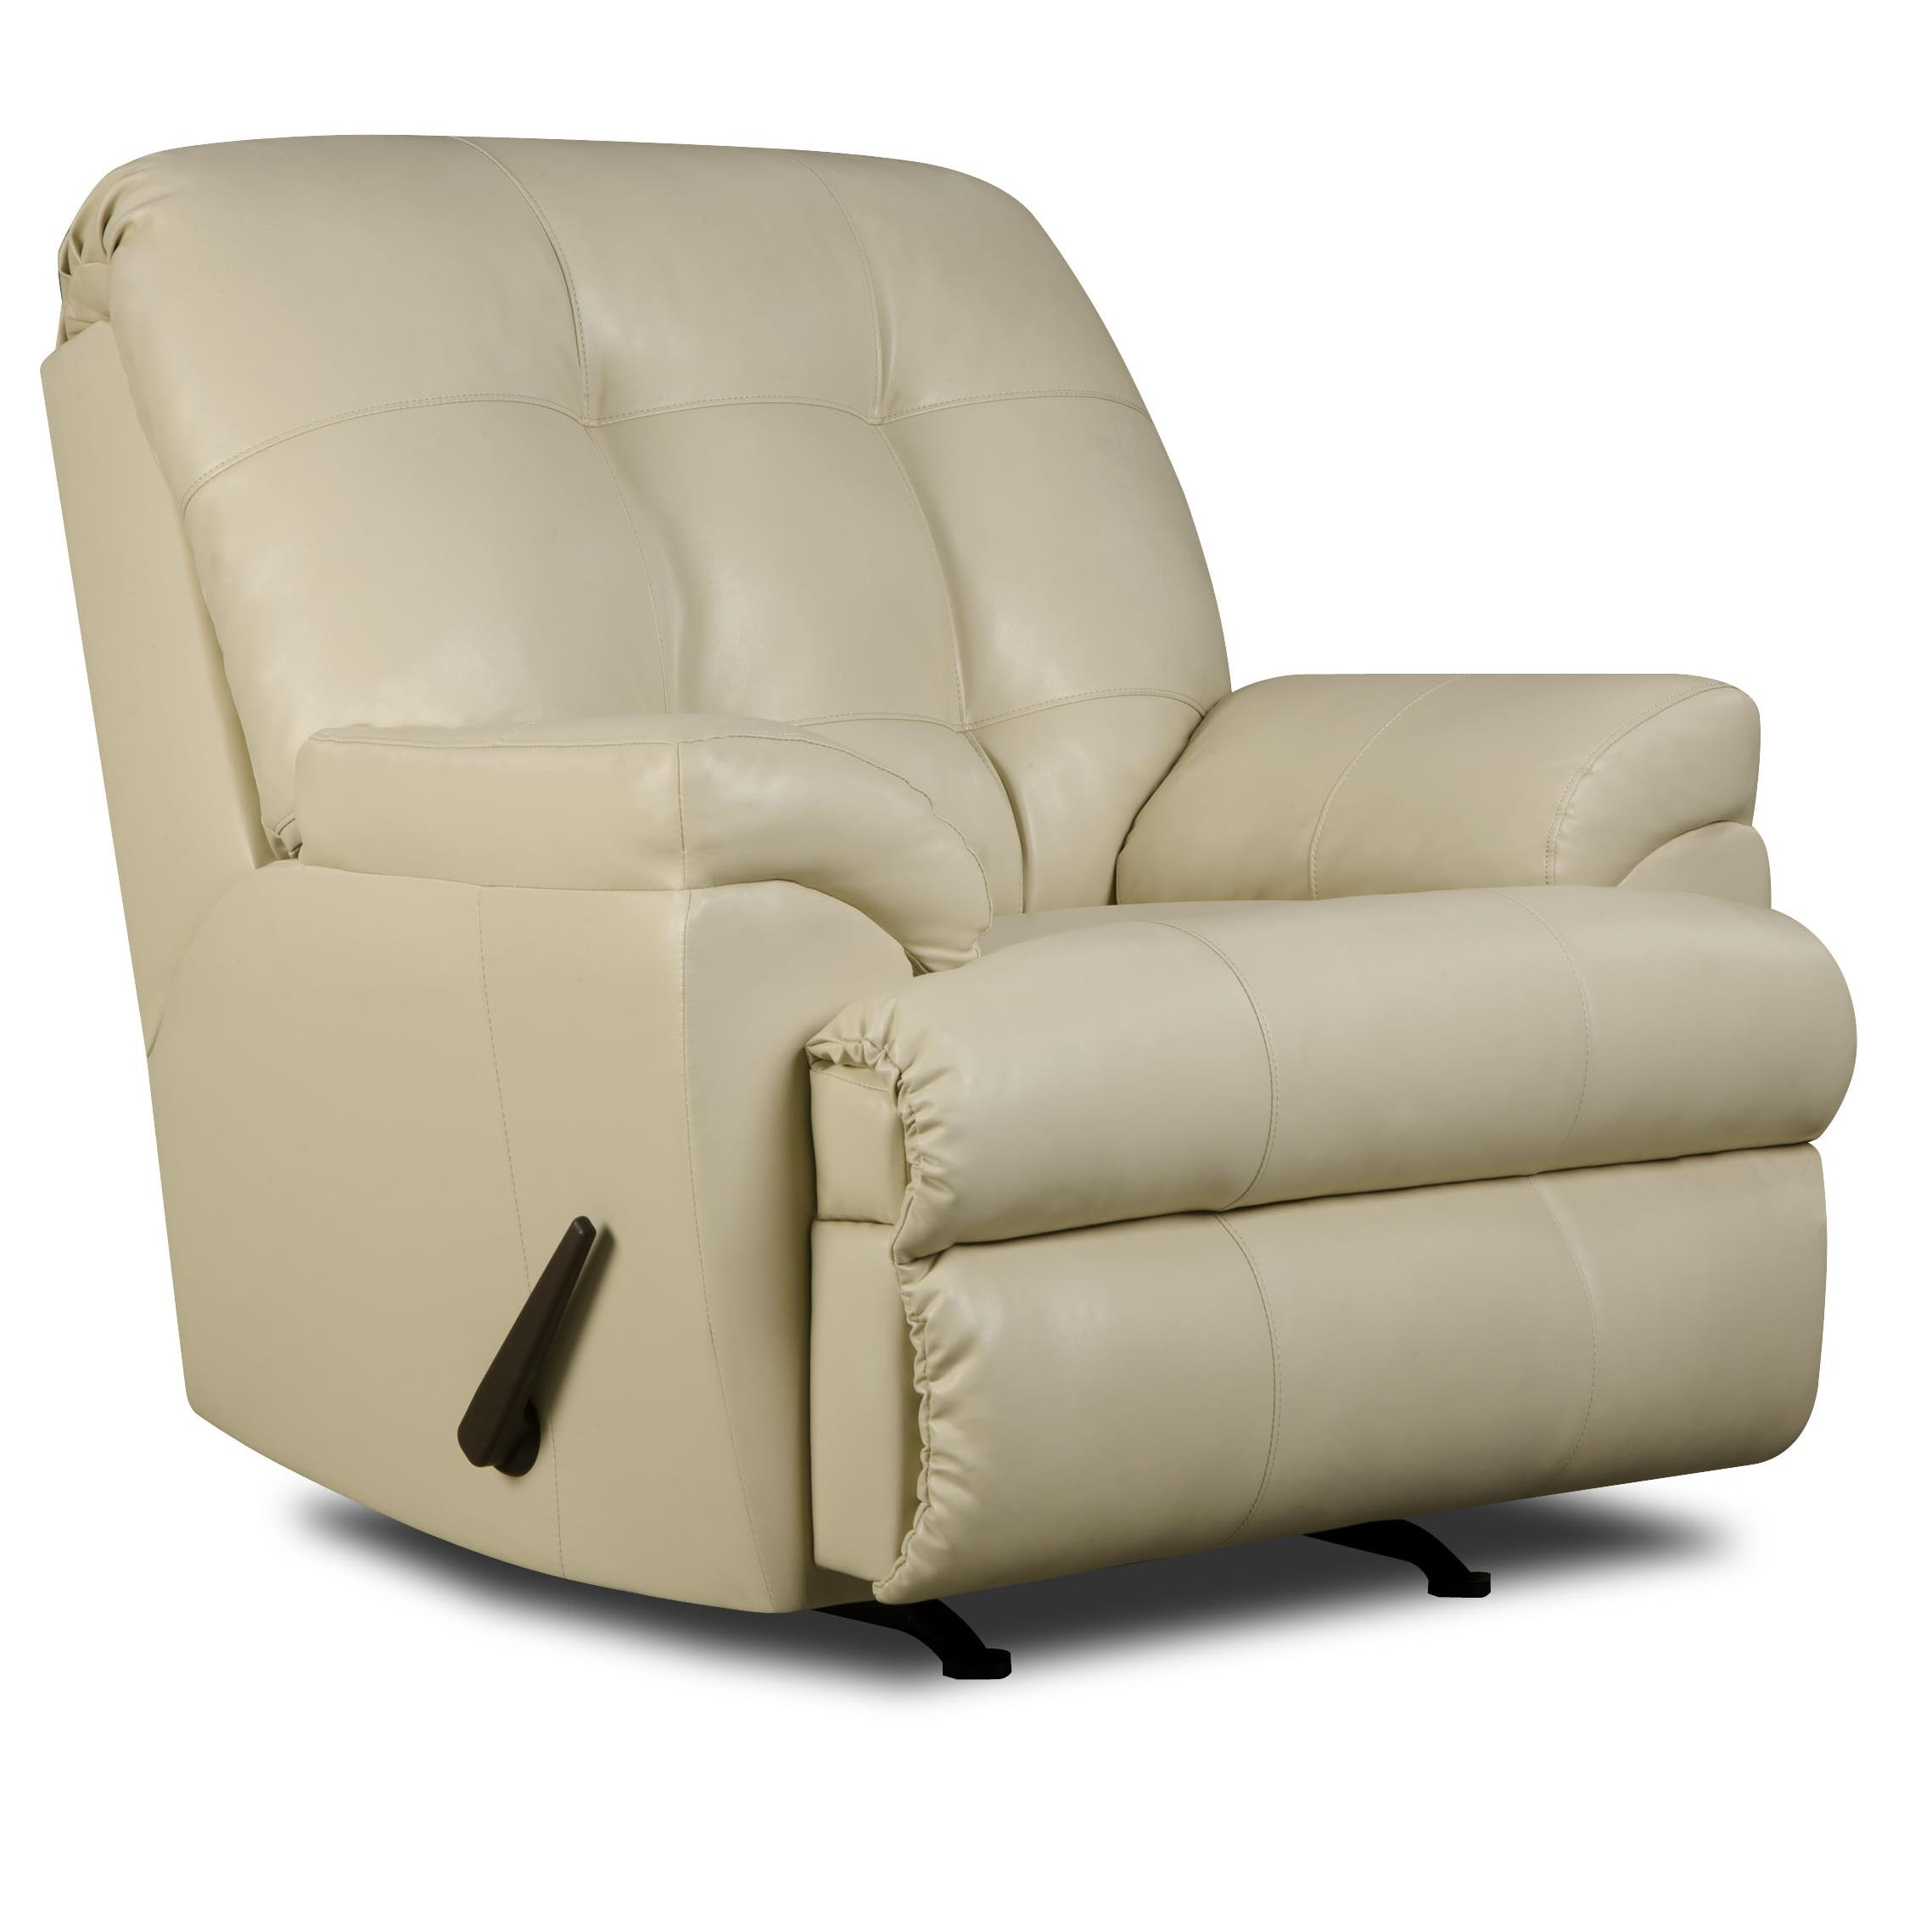 United Furniture Industries 9568 Rocker Recliner - Item Number: 9568Recliner-Pearl